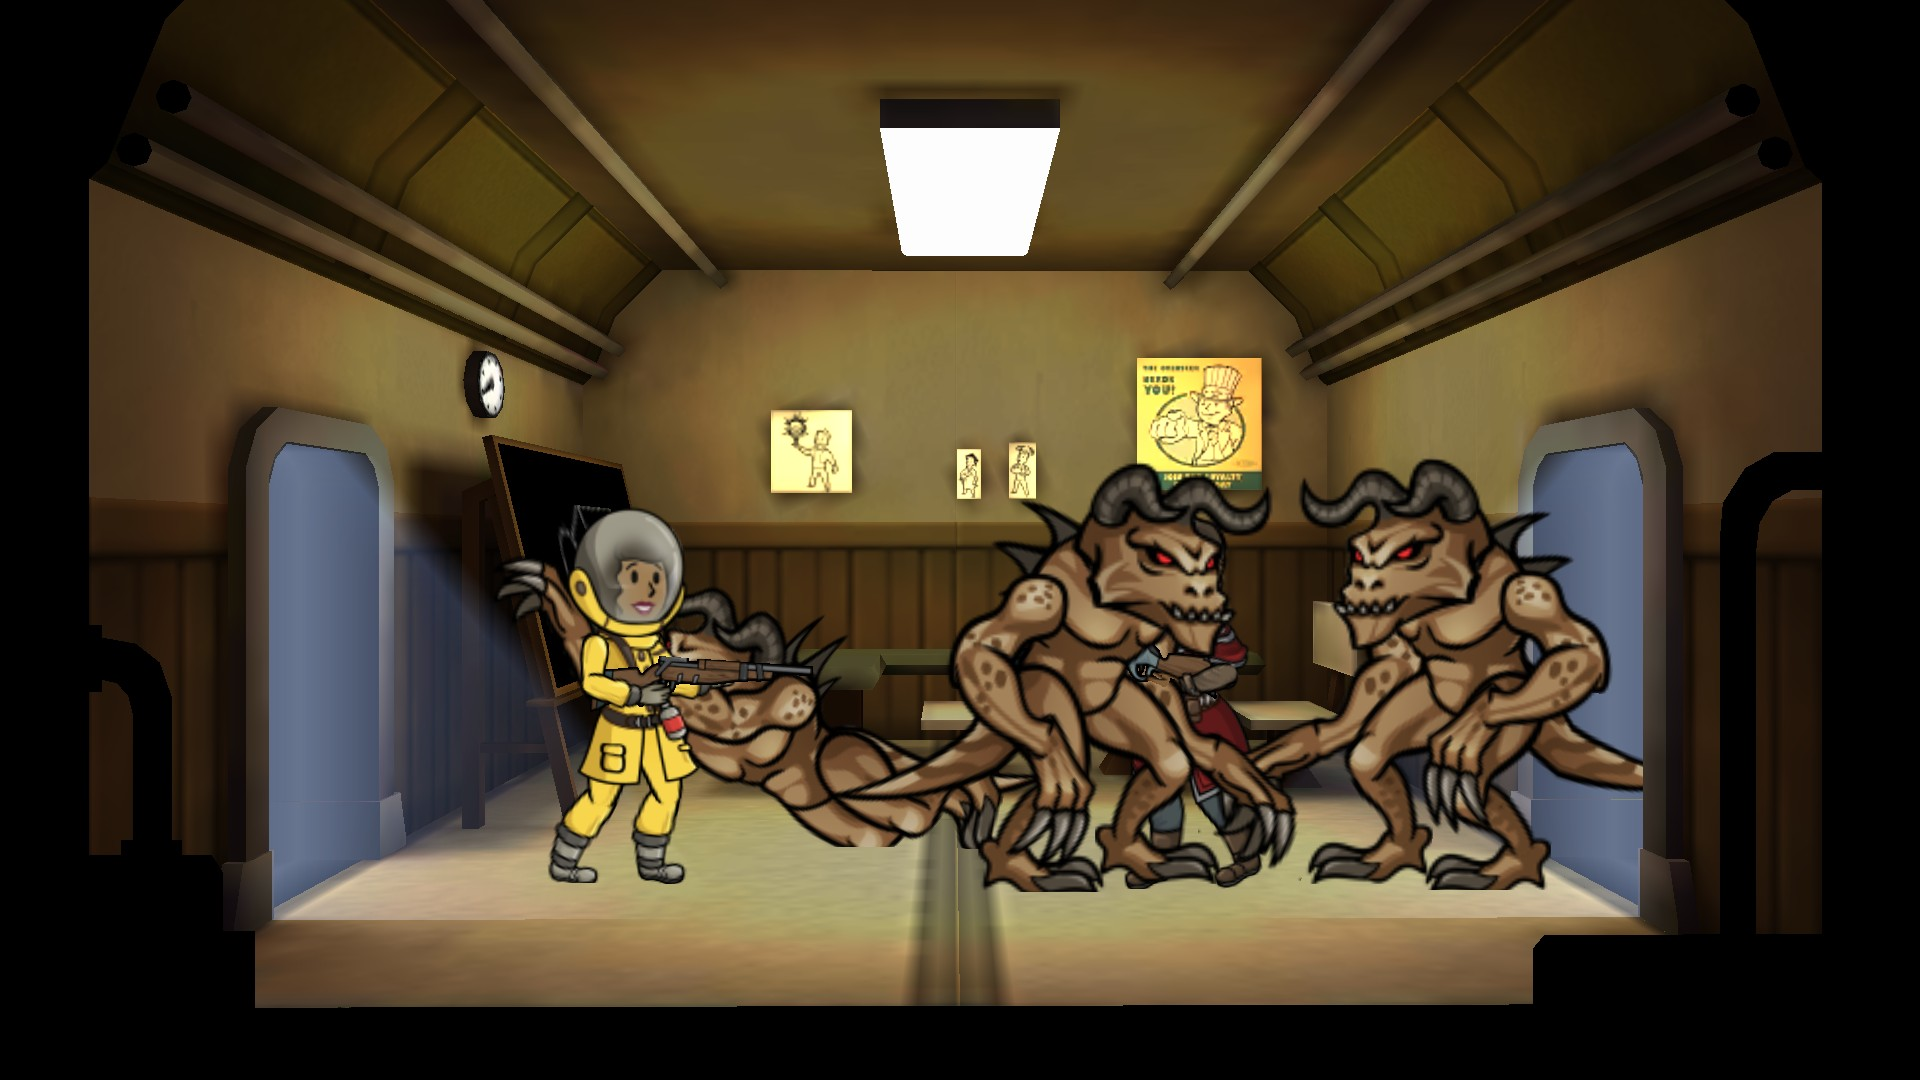 how to get fallout shelter to run in 32bit